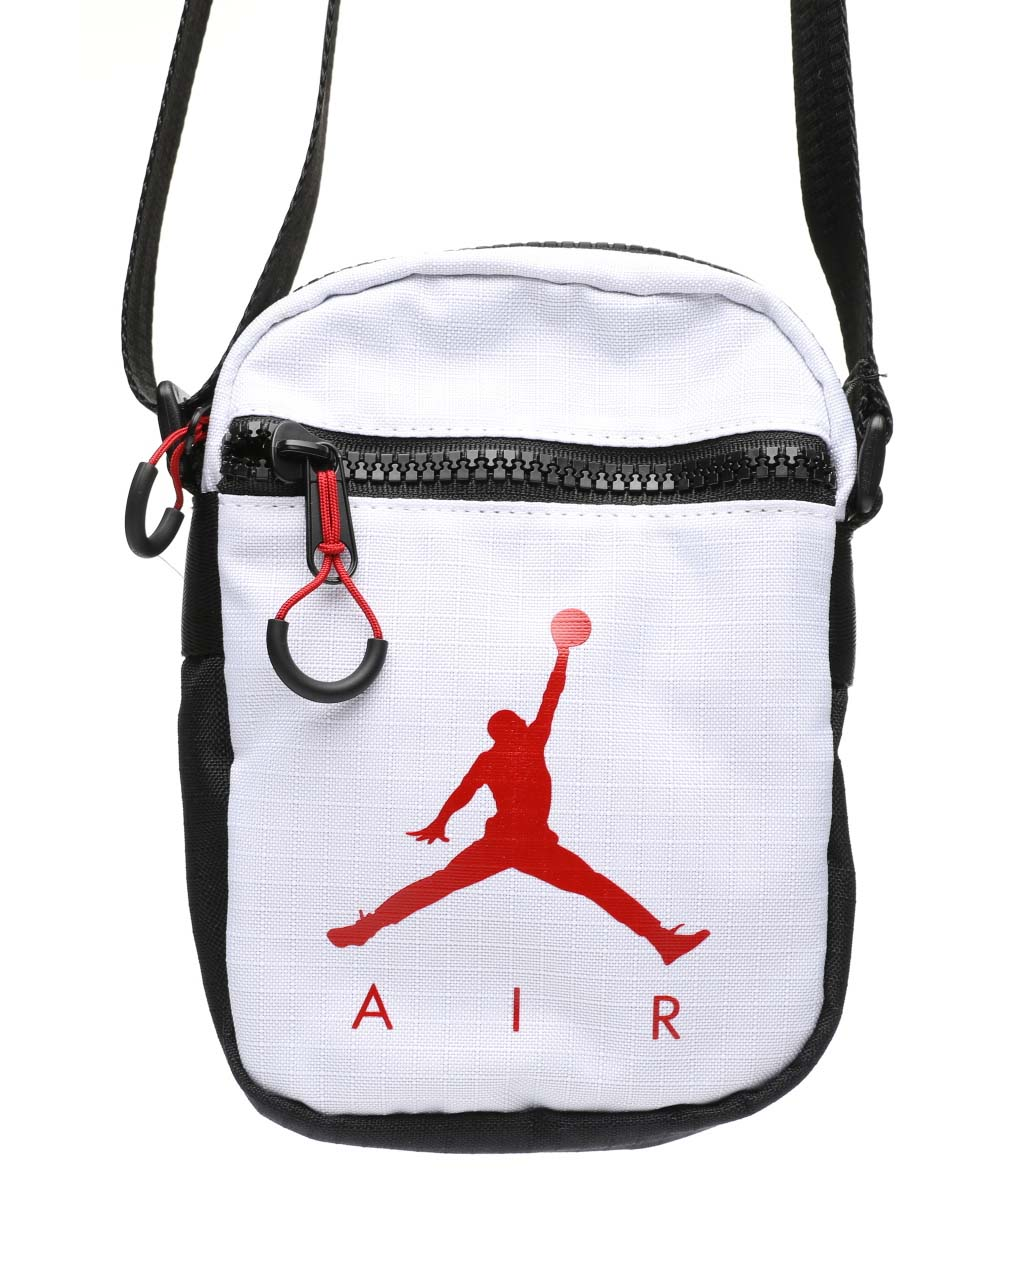 insondable extremidades Mata  Buy Jordan Jumpman Air Festival Bag (Unisex) Men's Bags from Air Jordan.  Find Air Jordan fashion & more at DrJays.com